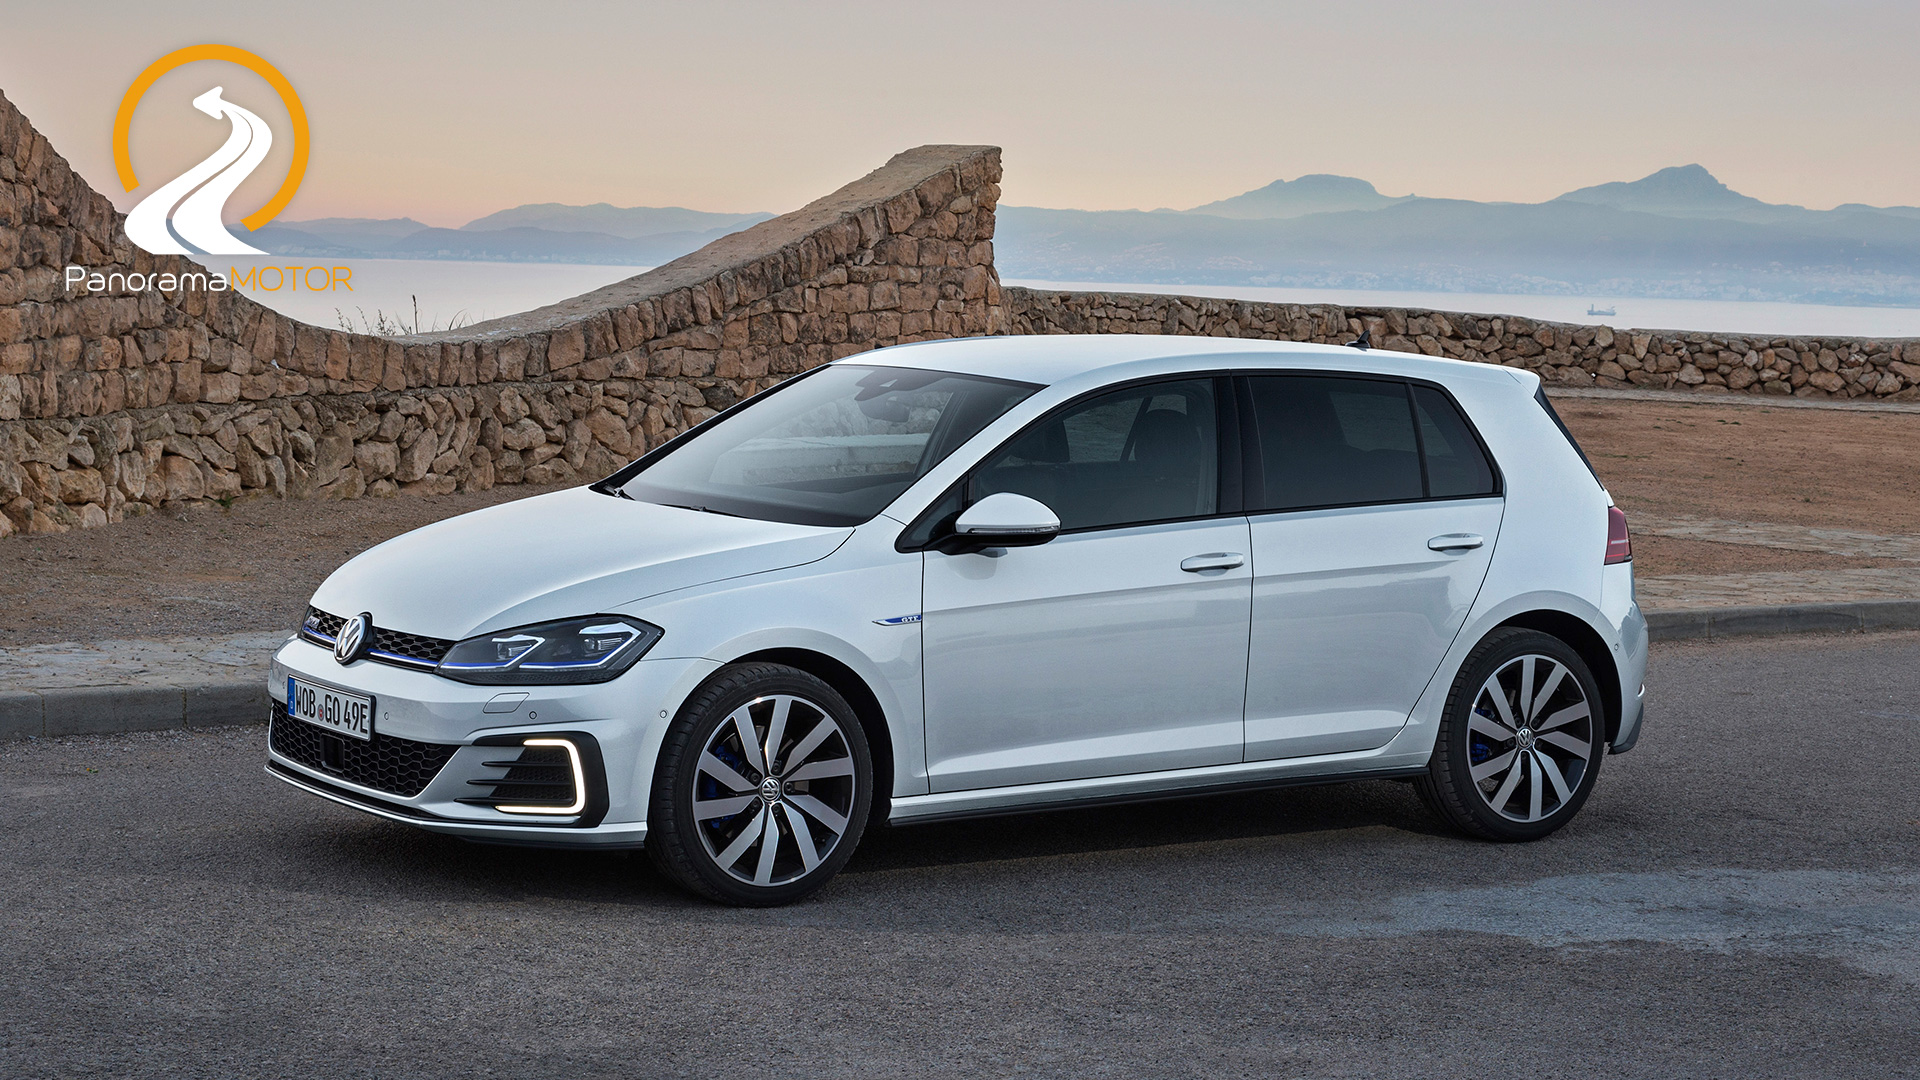 volkswagen golf gte 2017 panorama motor. Black Bedroom Furniture Sets. Home Design Ideas